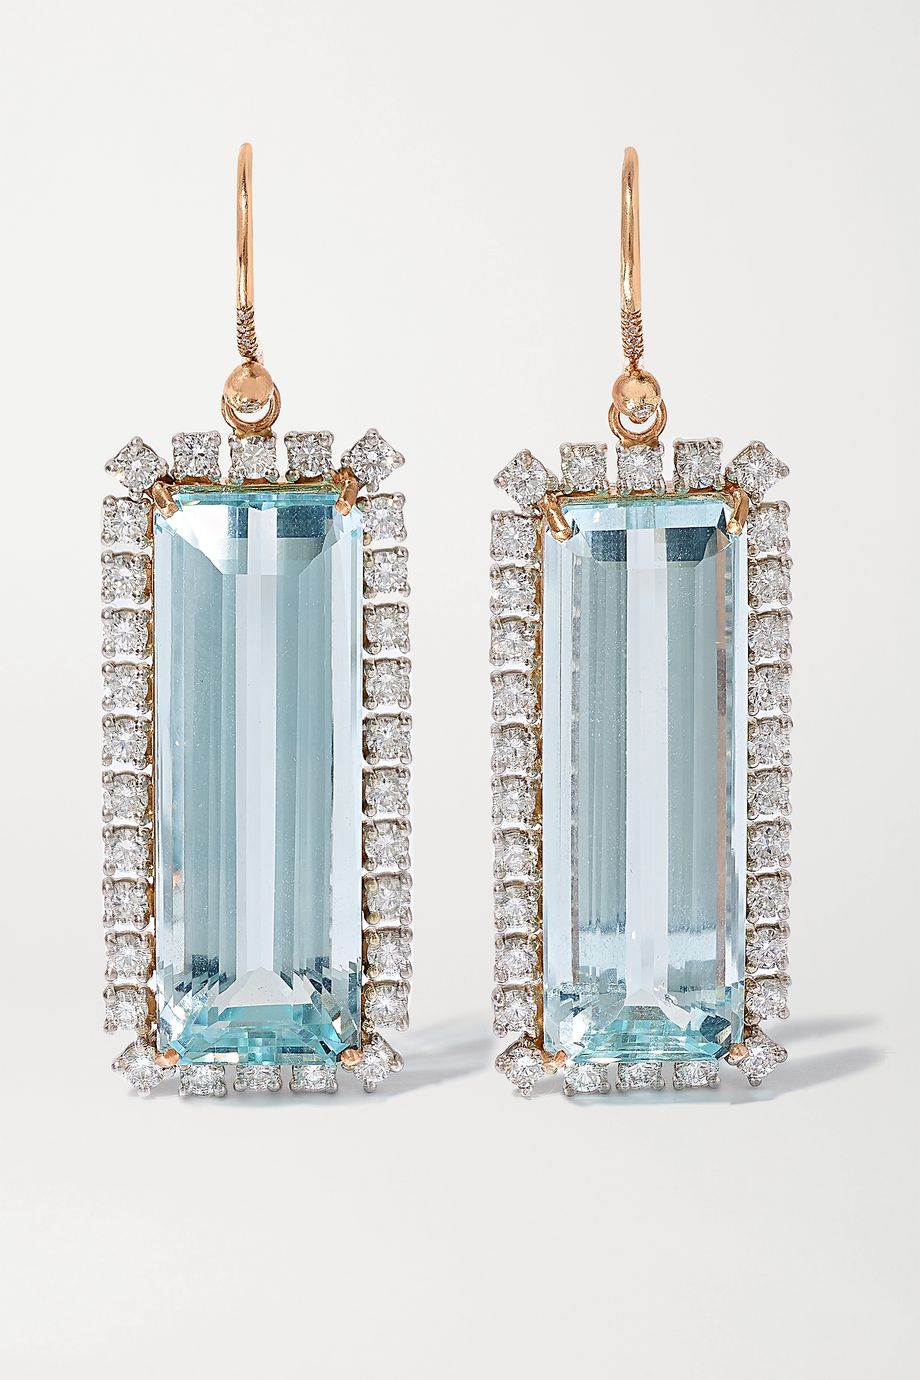 Irene Neuwirth Gemmy Gem 18-karat white and yellow gold, aquamarine and diamond earrings